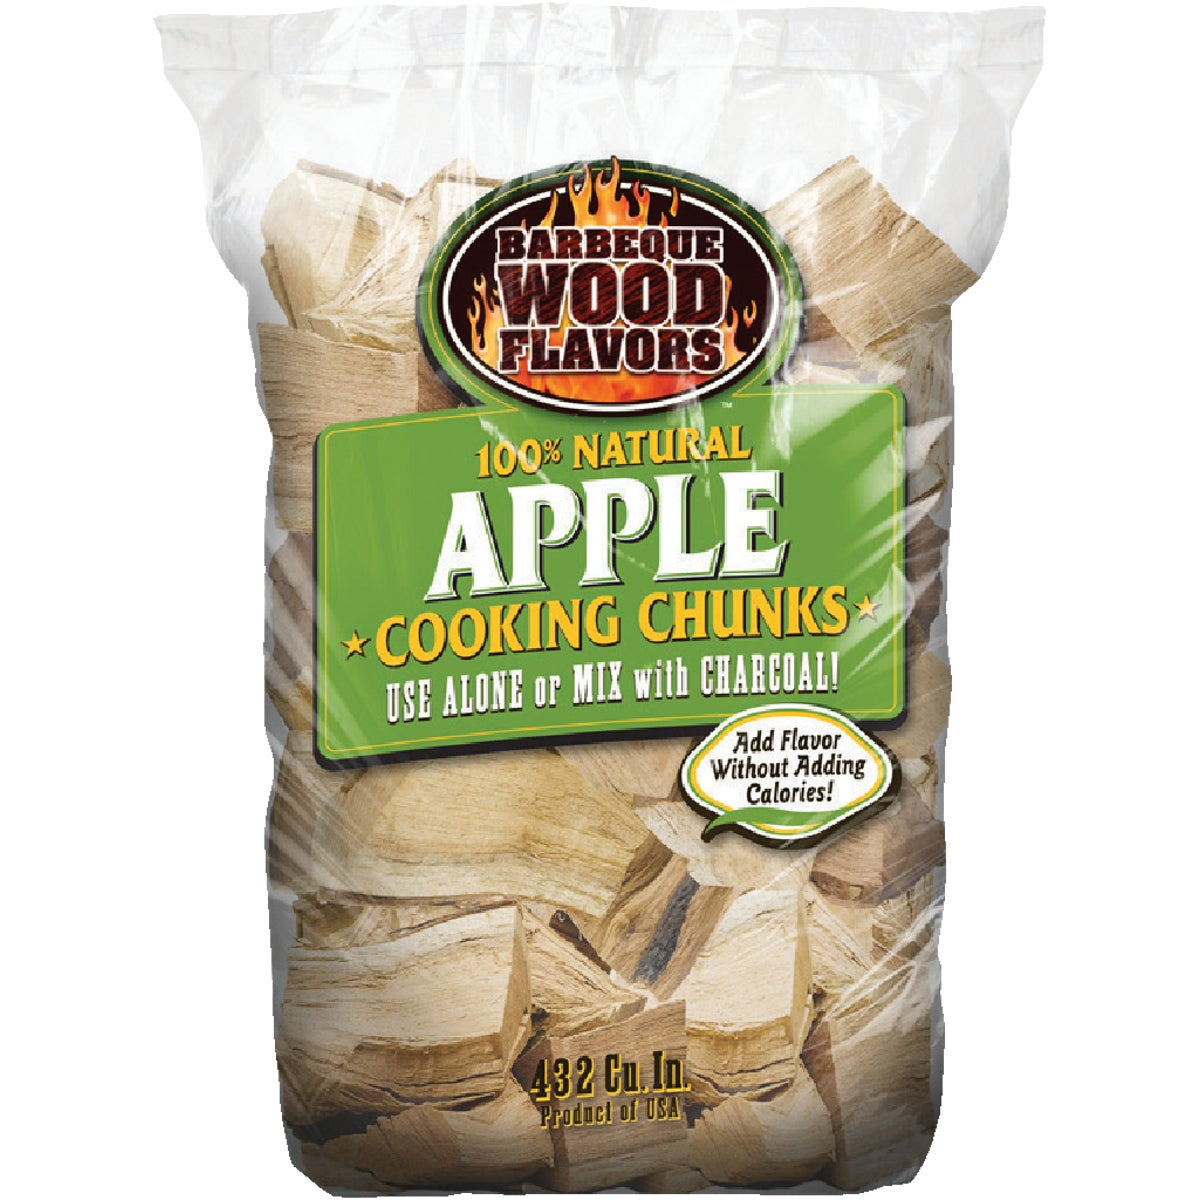 6LB APPLE WOOD CHUNKS - 20031 by Barbeque Wood Flavor